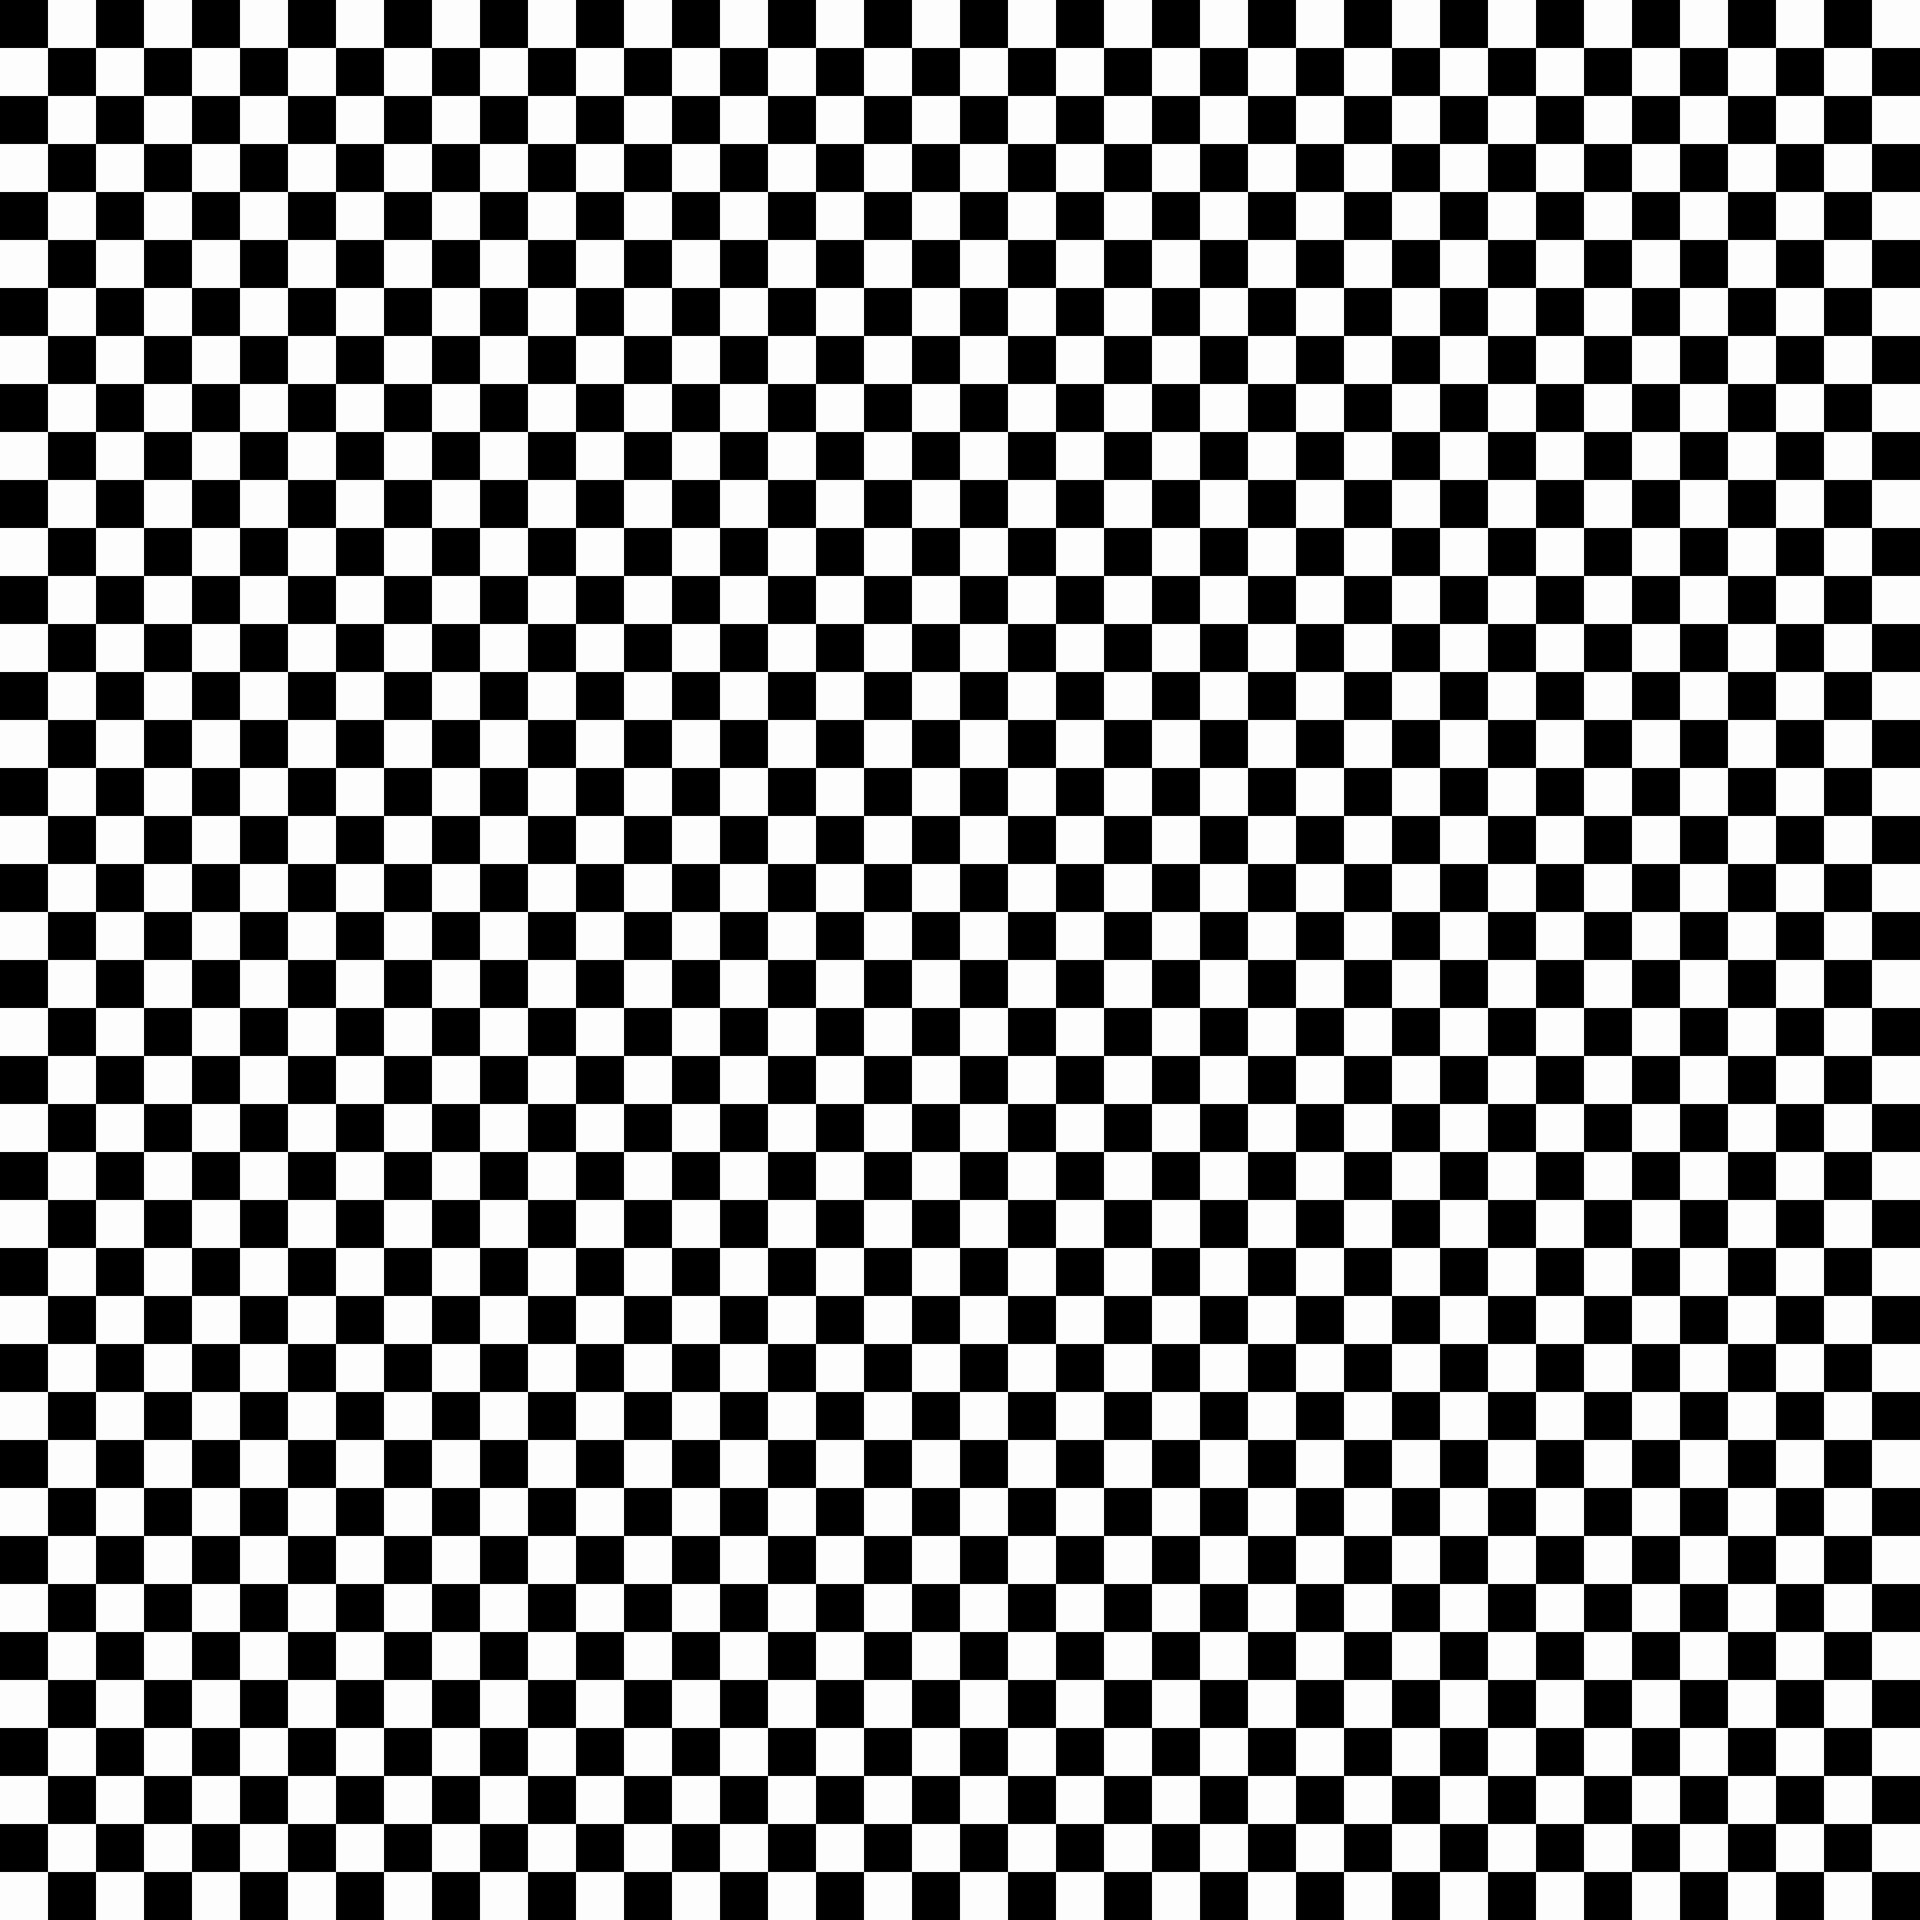 Pictures Of A Checker Board Awesome Checkerboard Pattern Free Stock Public Domain